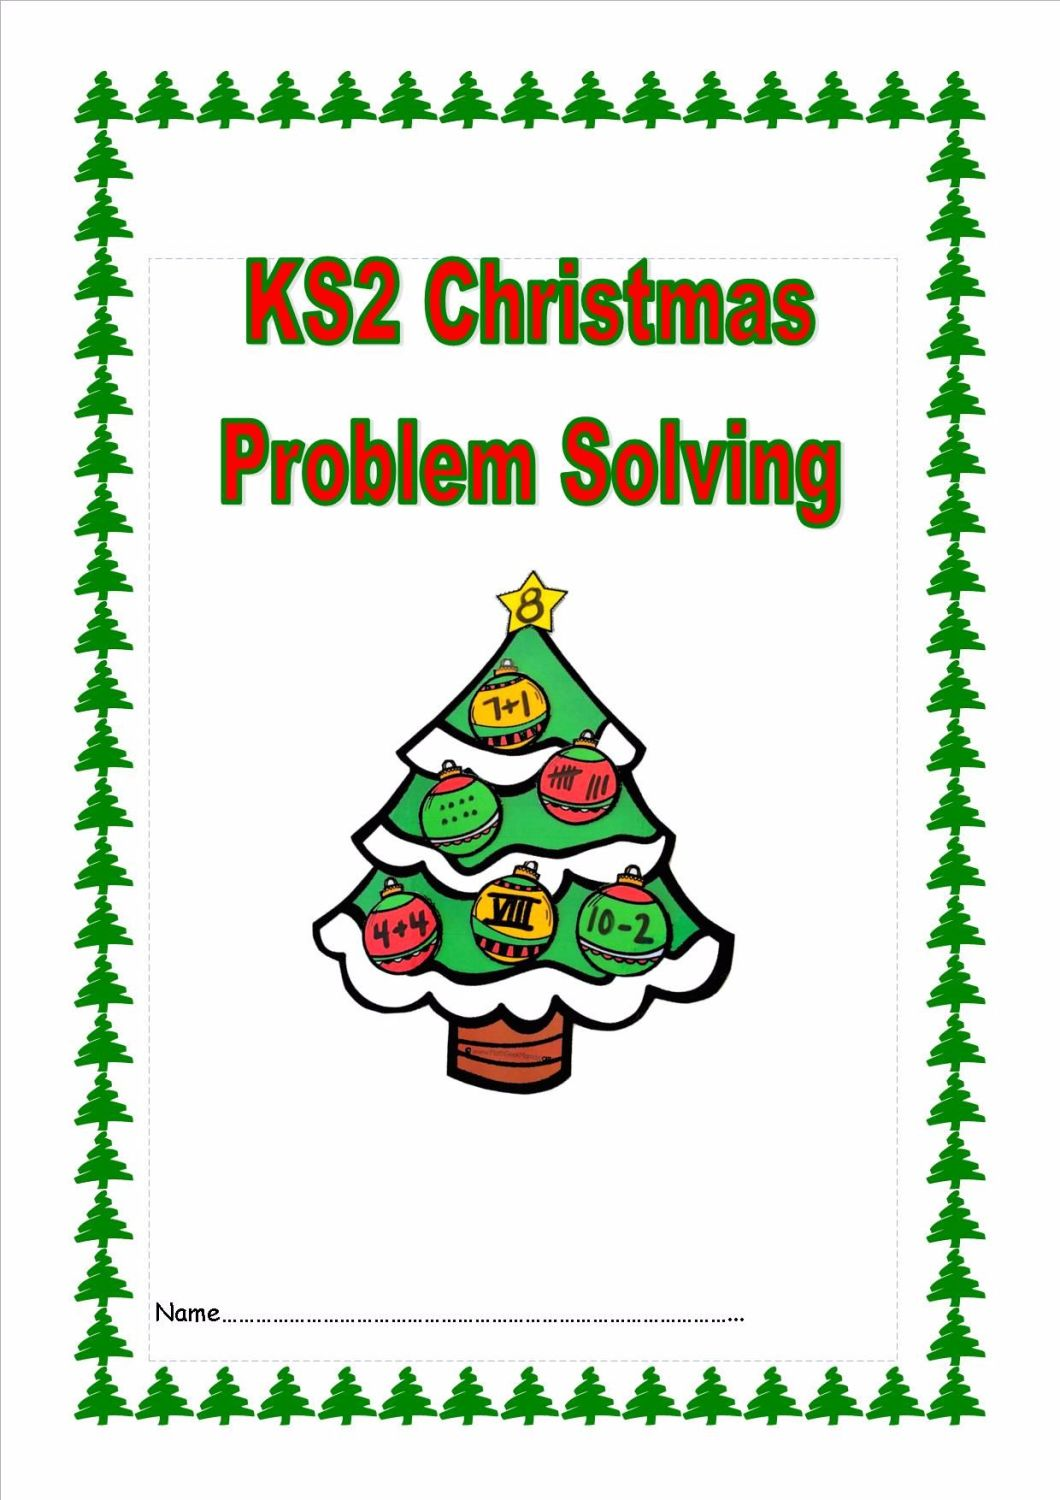 KS2 Christmas Problem Solving Booklet